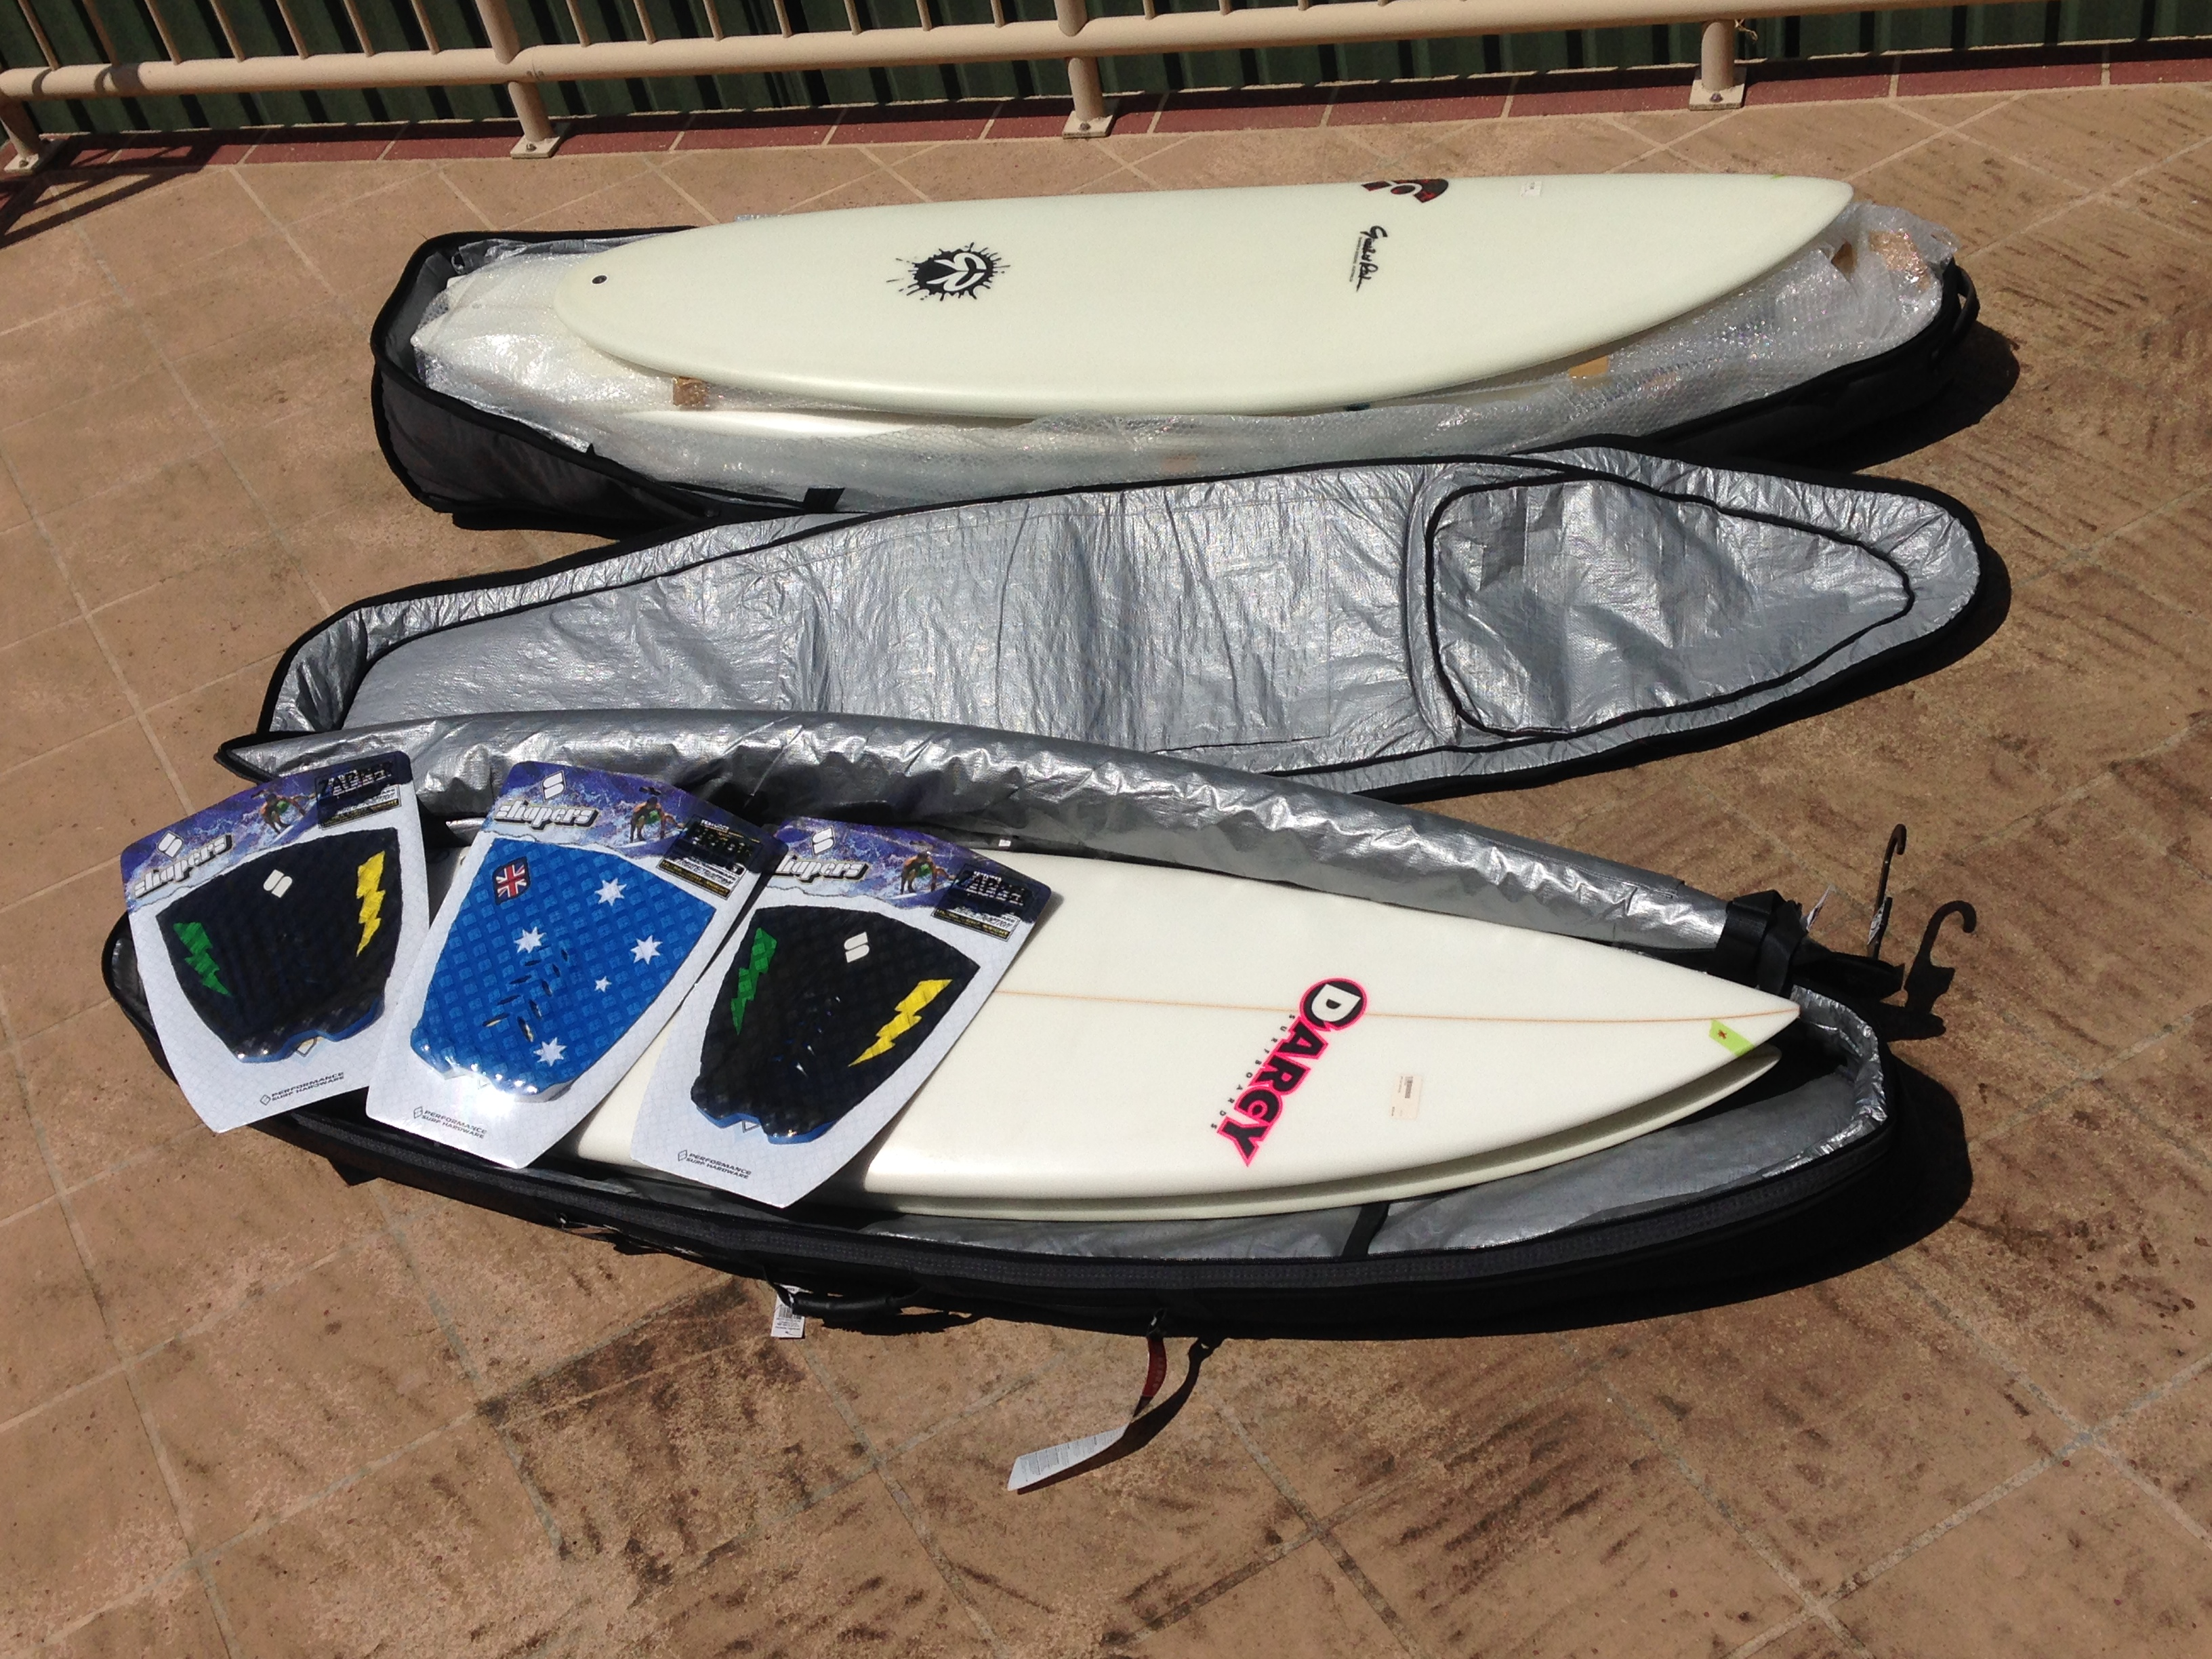 8 Brand New Boards for India